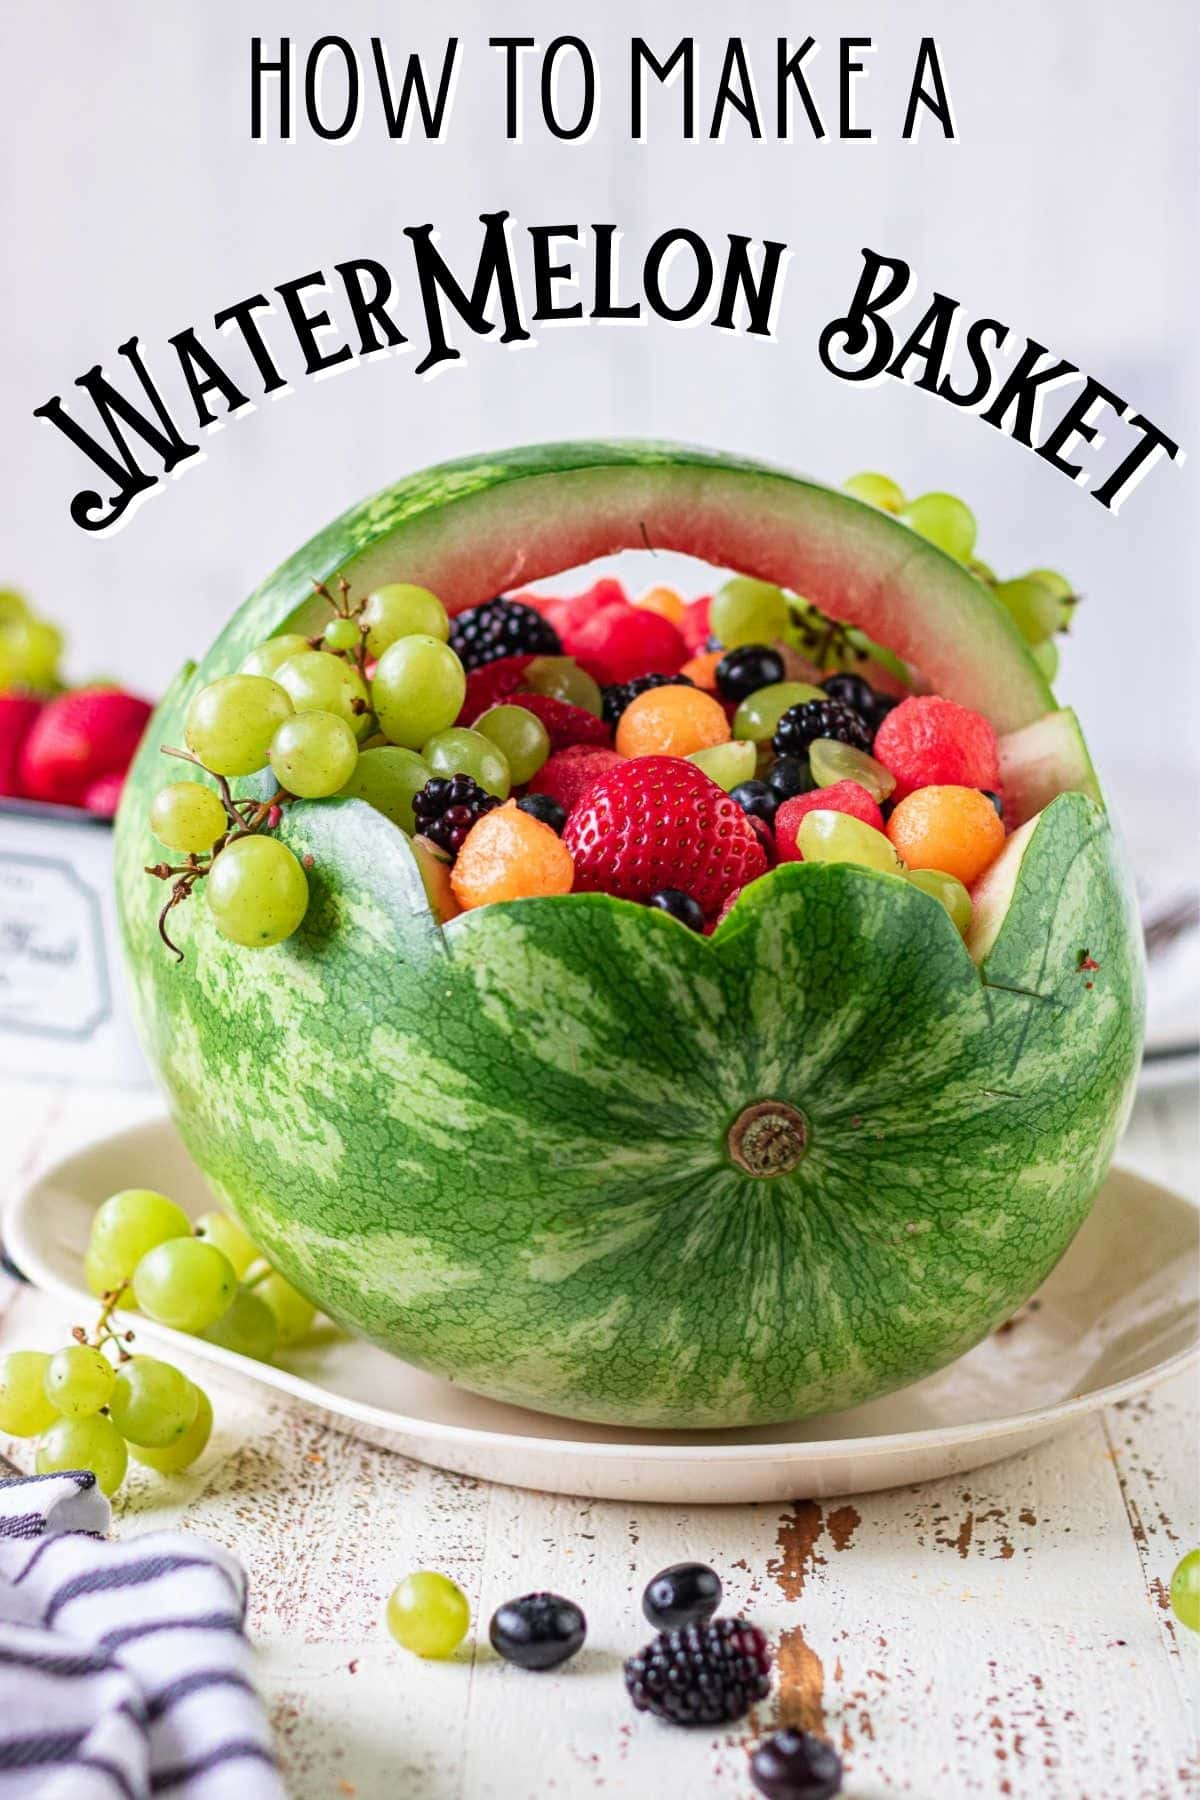 Side view of a finished watermelon basket on a table. Title text overlay.